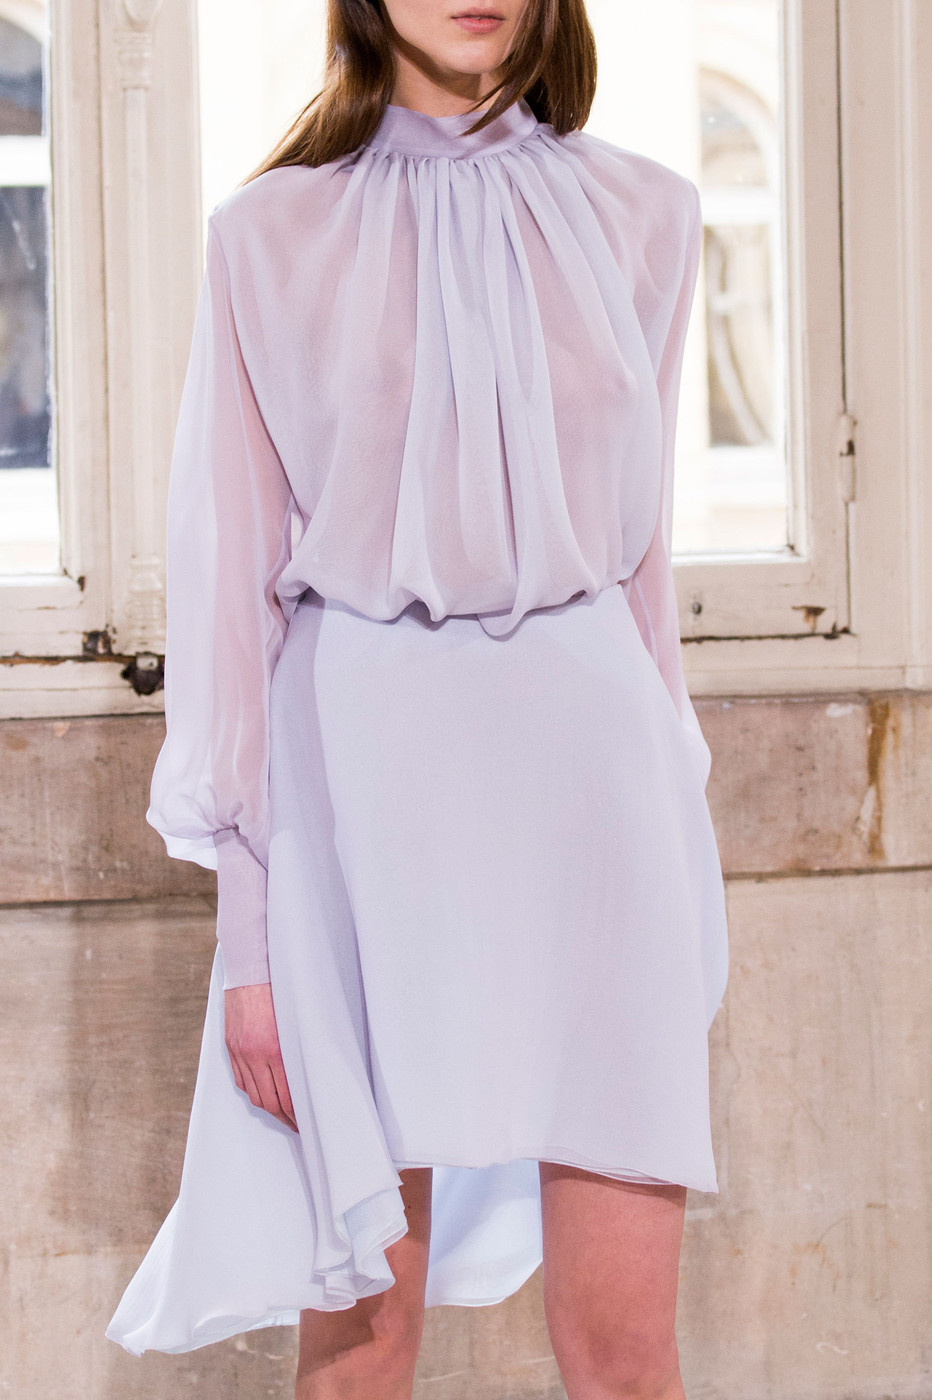 Bouchra Jarrar Haute Couture Spring-Summer 2016 / Lanvin new fashion designer via www.fashionedbylove.co.uk